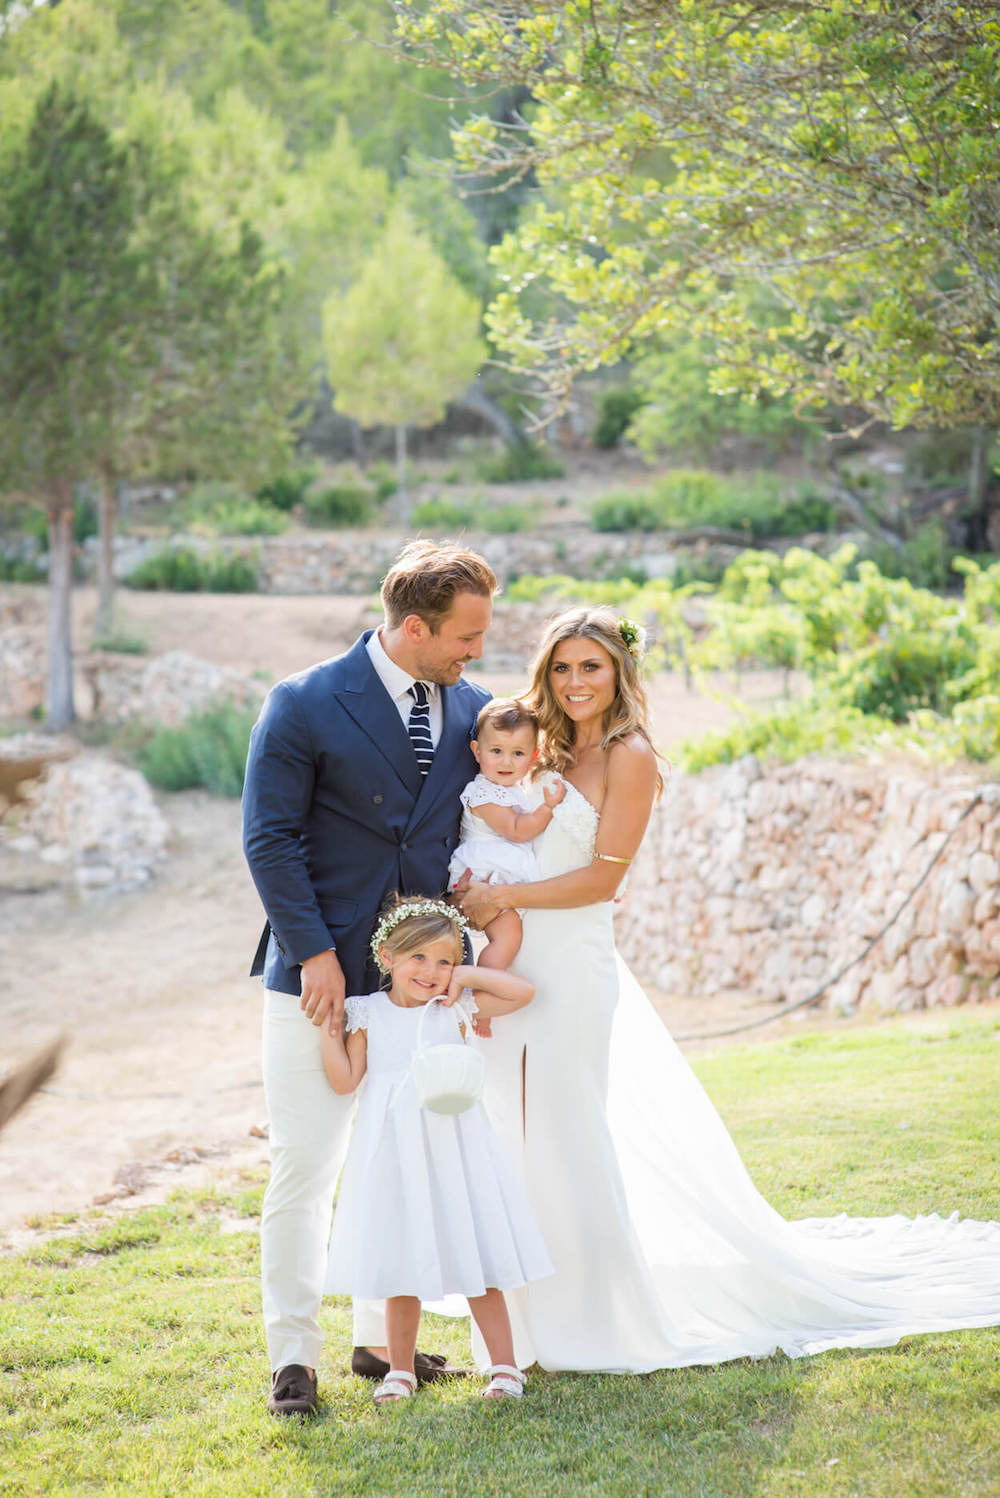 family baby bride groom portrait pronovia garden wedding zoe hardman hello magazine